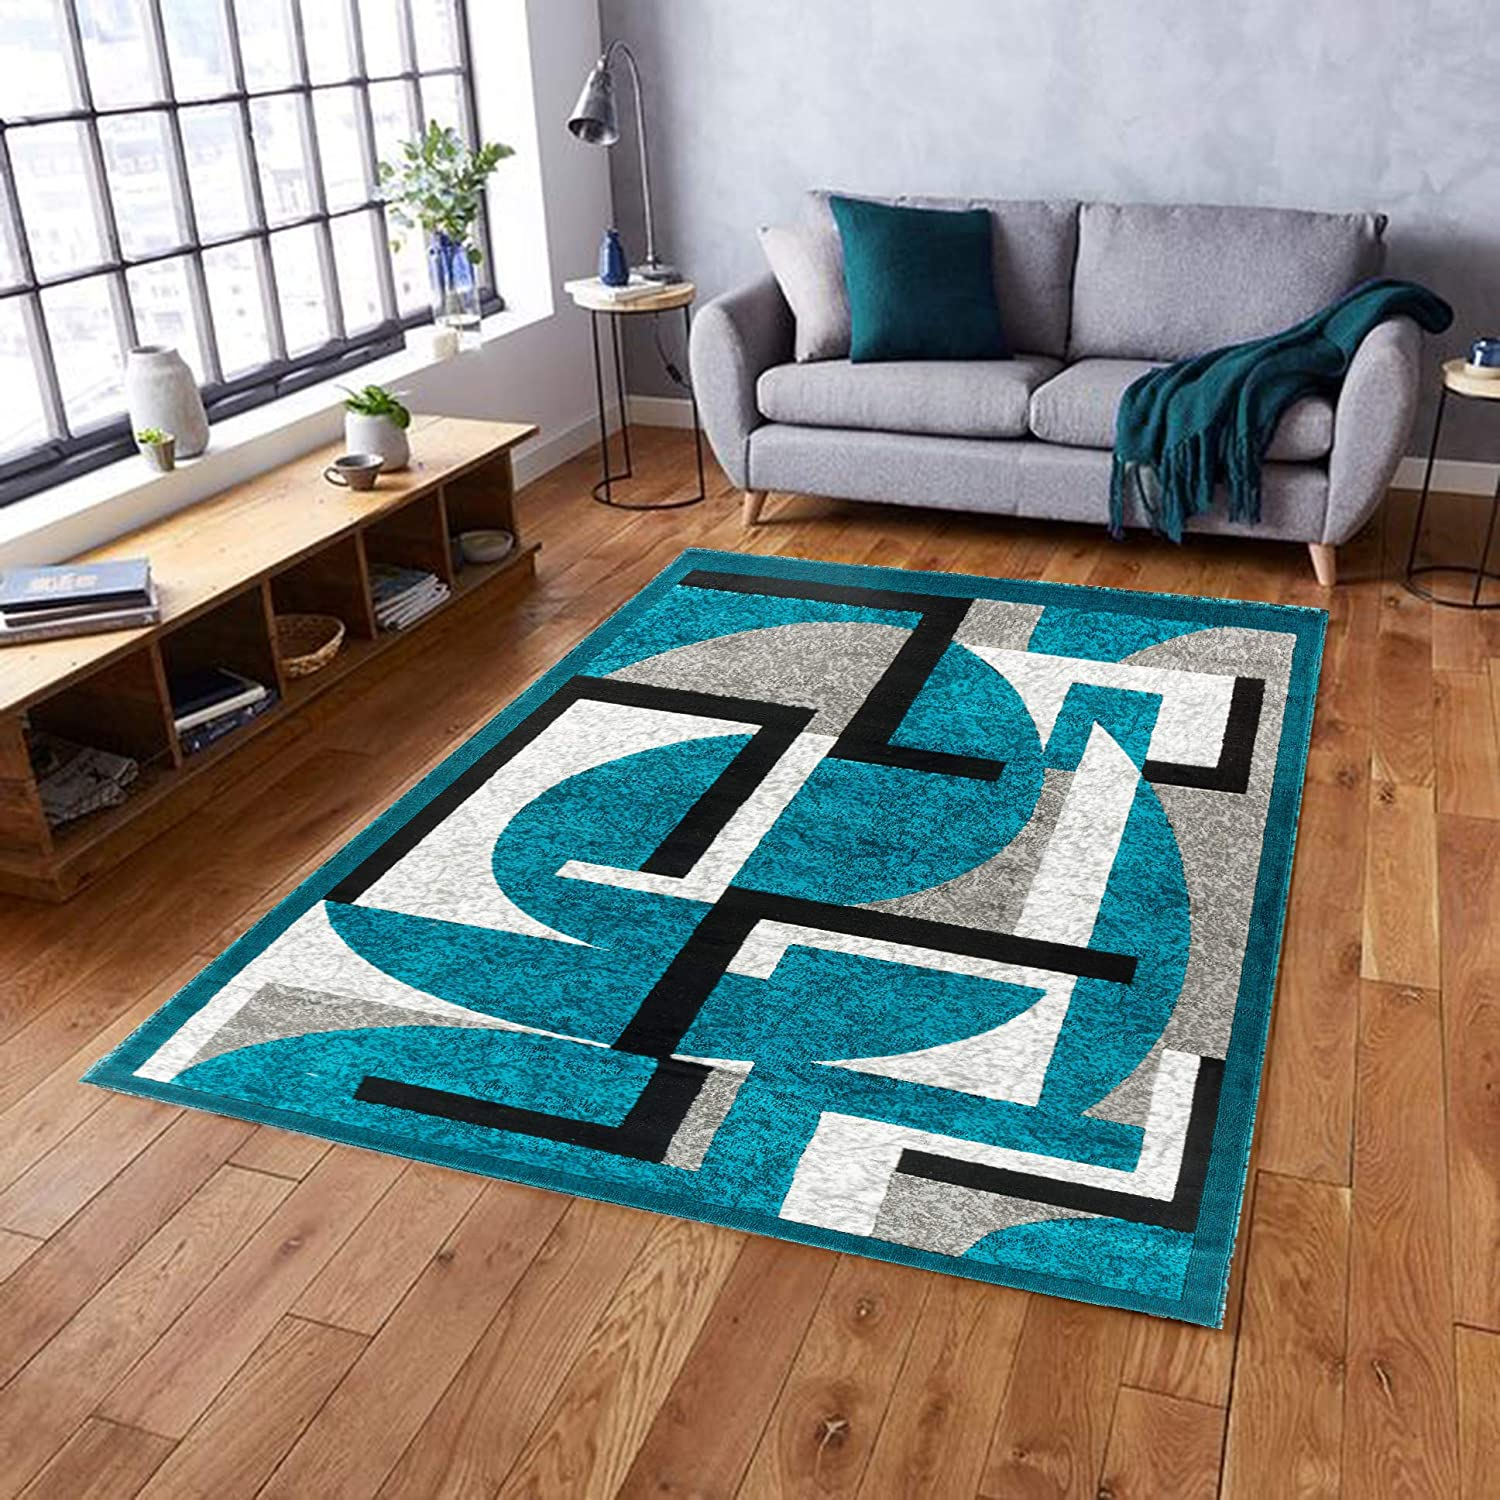 Canary Collection Modern Contemporary Area Max 46% OFF Geometric Popular brand in the world Design Rug